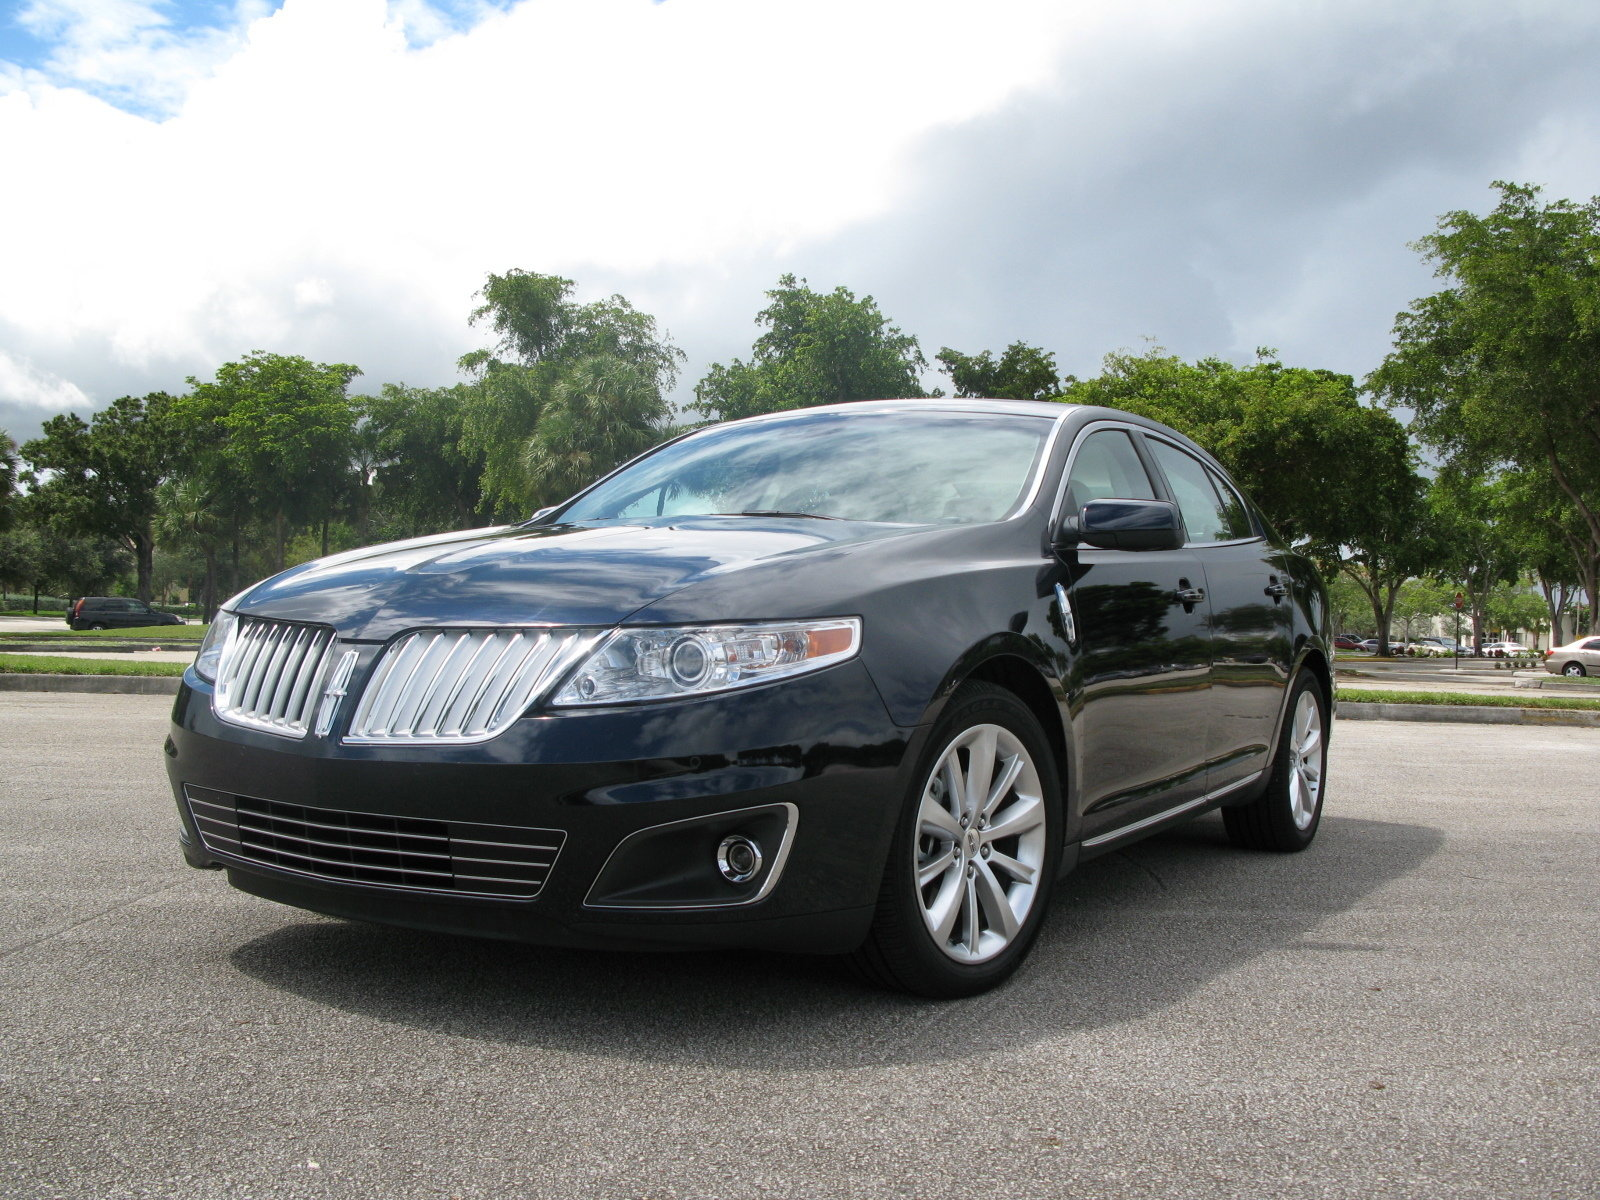 http://pictures.topspeed.com/IMG/crop/200810/2009-lincoln-mks-awd-4_1600x0w.jpg